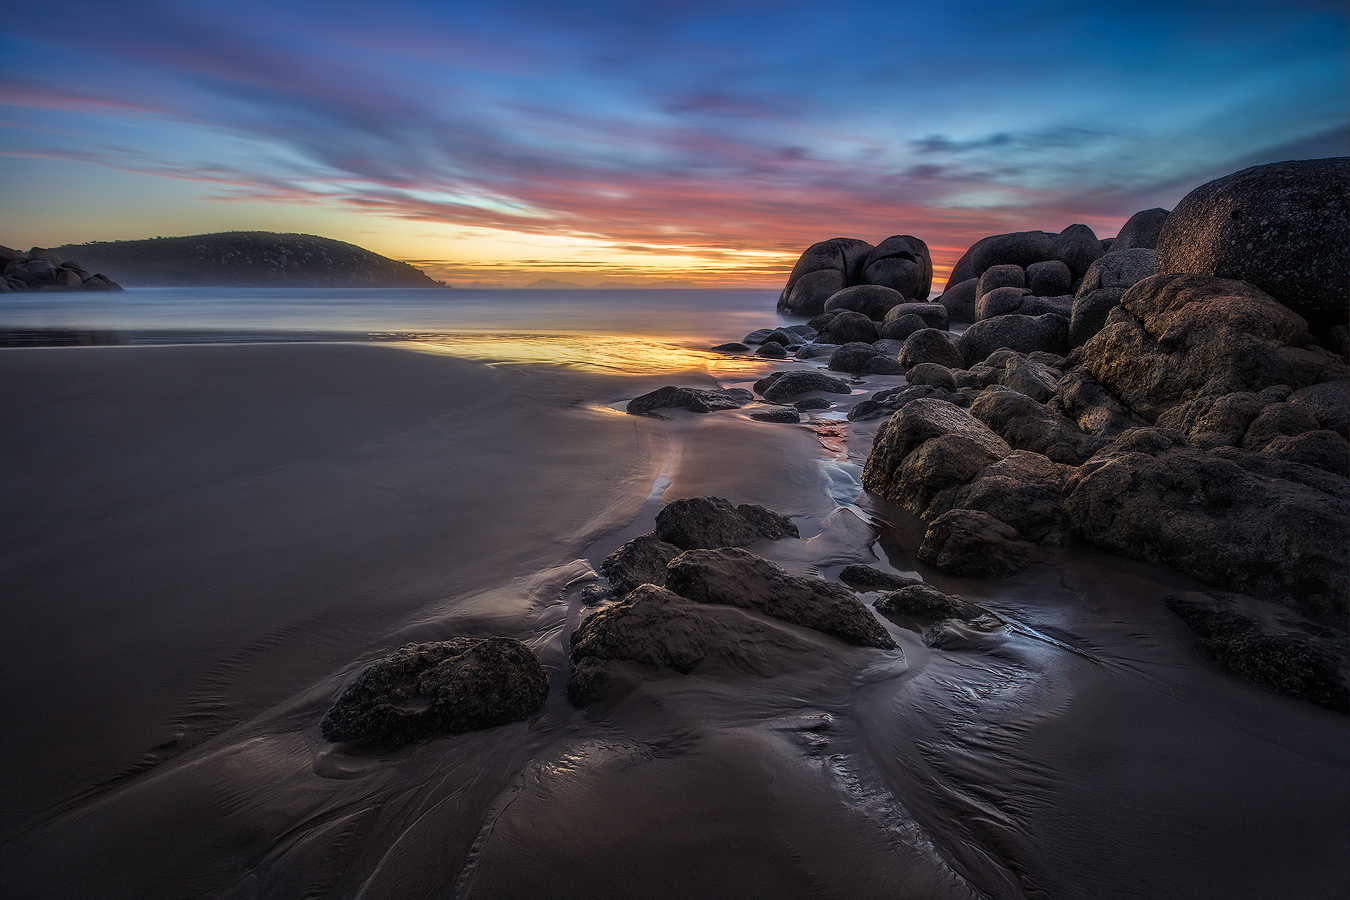 Whisky Bay - Wilsons Promontory | Landscape Photography Masterclass | We Are Raw Photography Tours